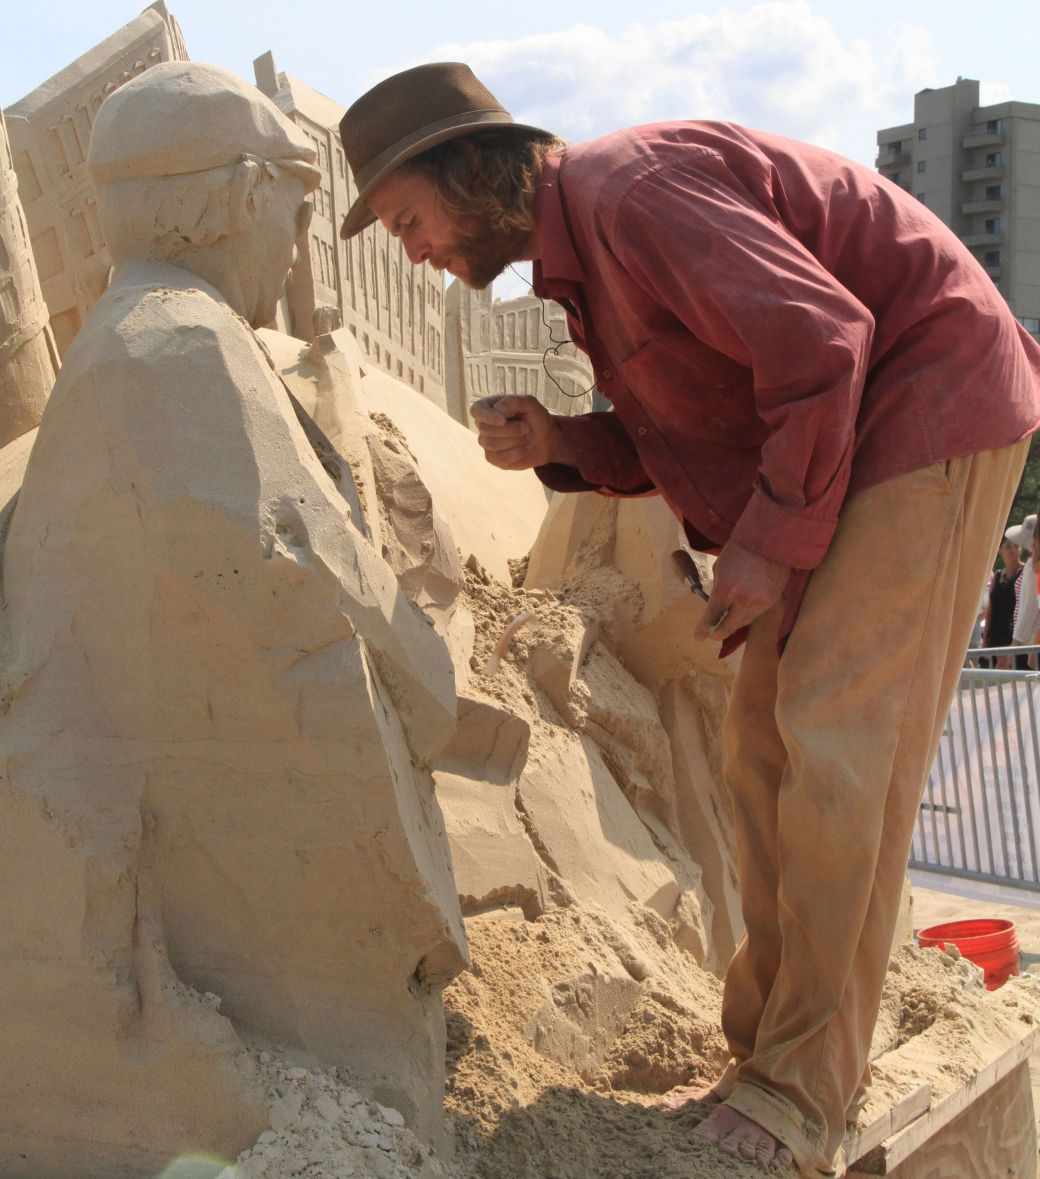 boston revere beach sand sculpting festival july 18 2014 24